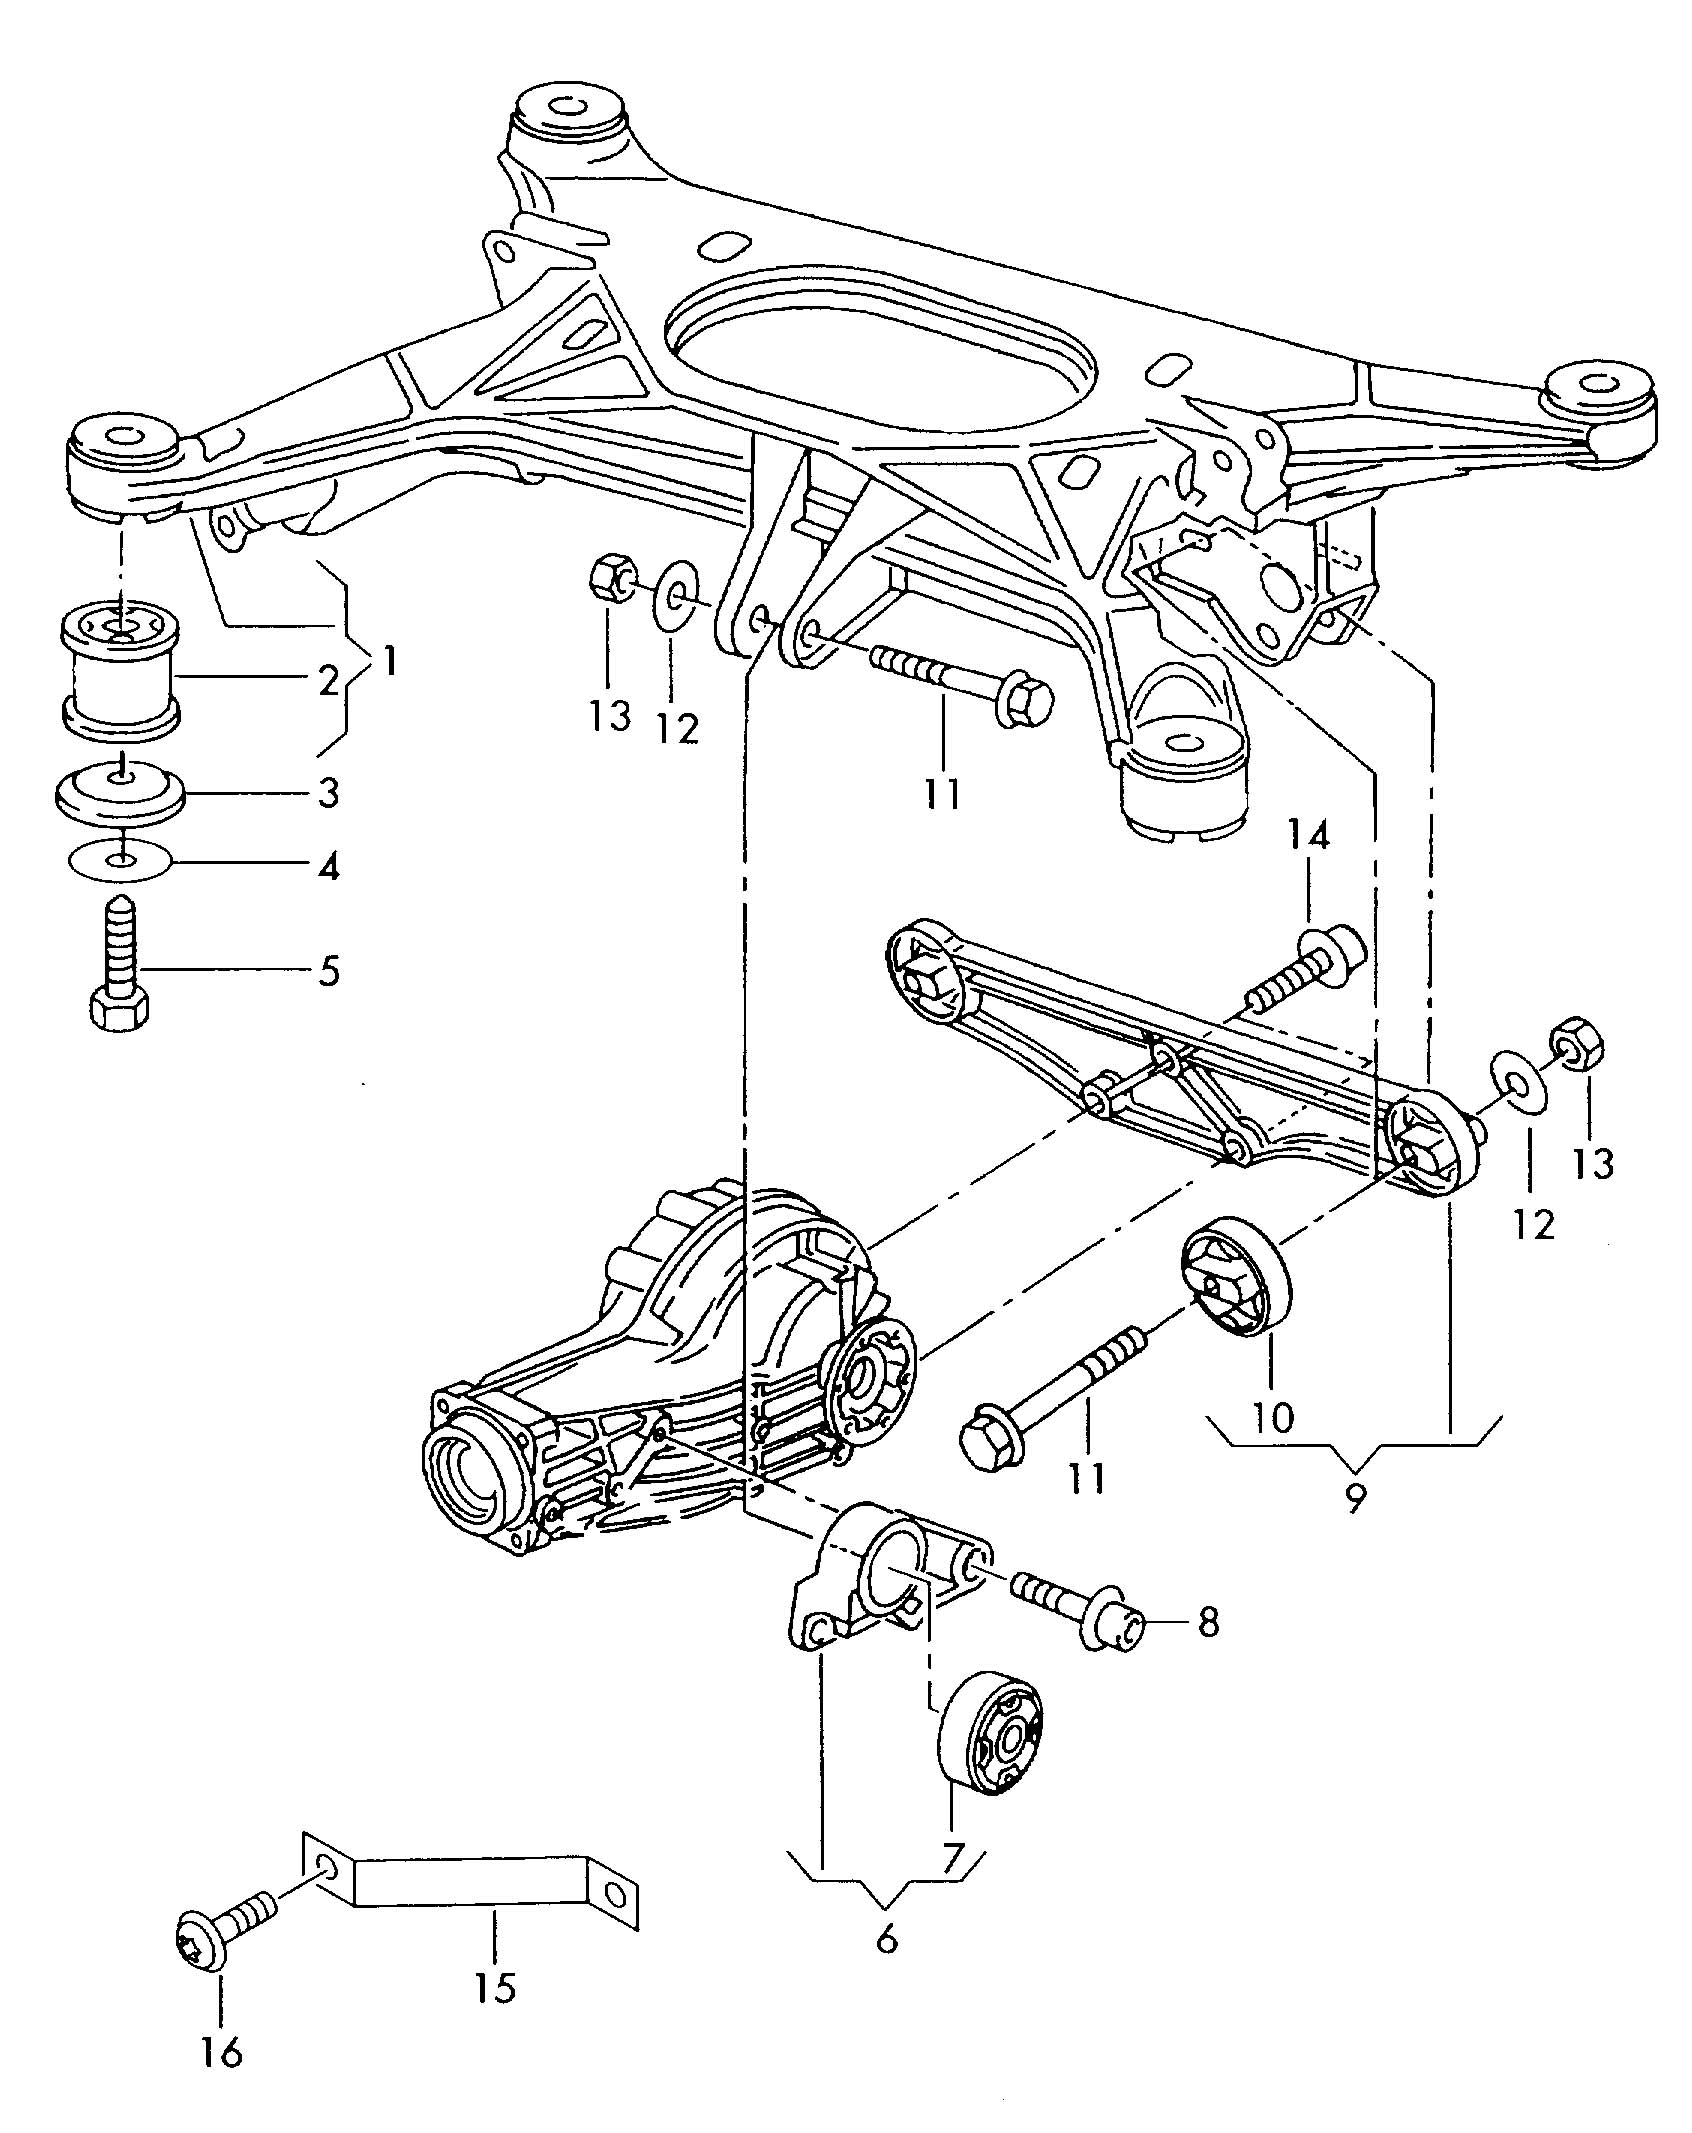 2005 chevy equinox suspension diagram jeep yj fuse box 3000gt ke get free image about wiring